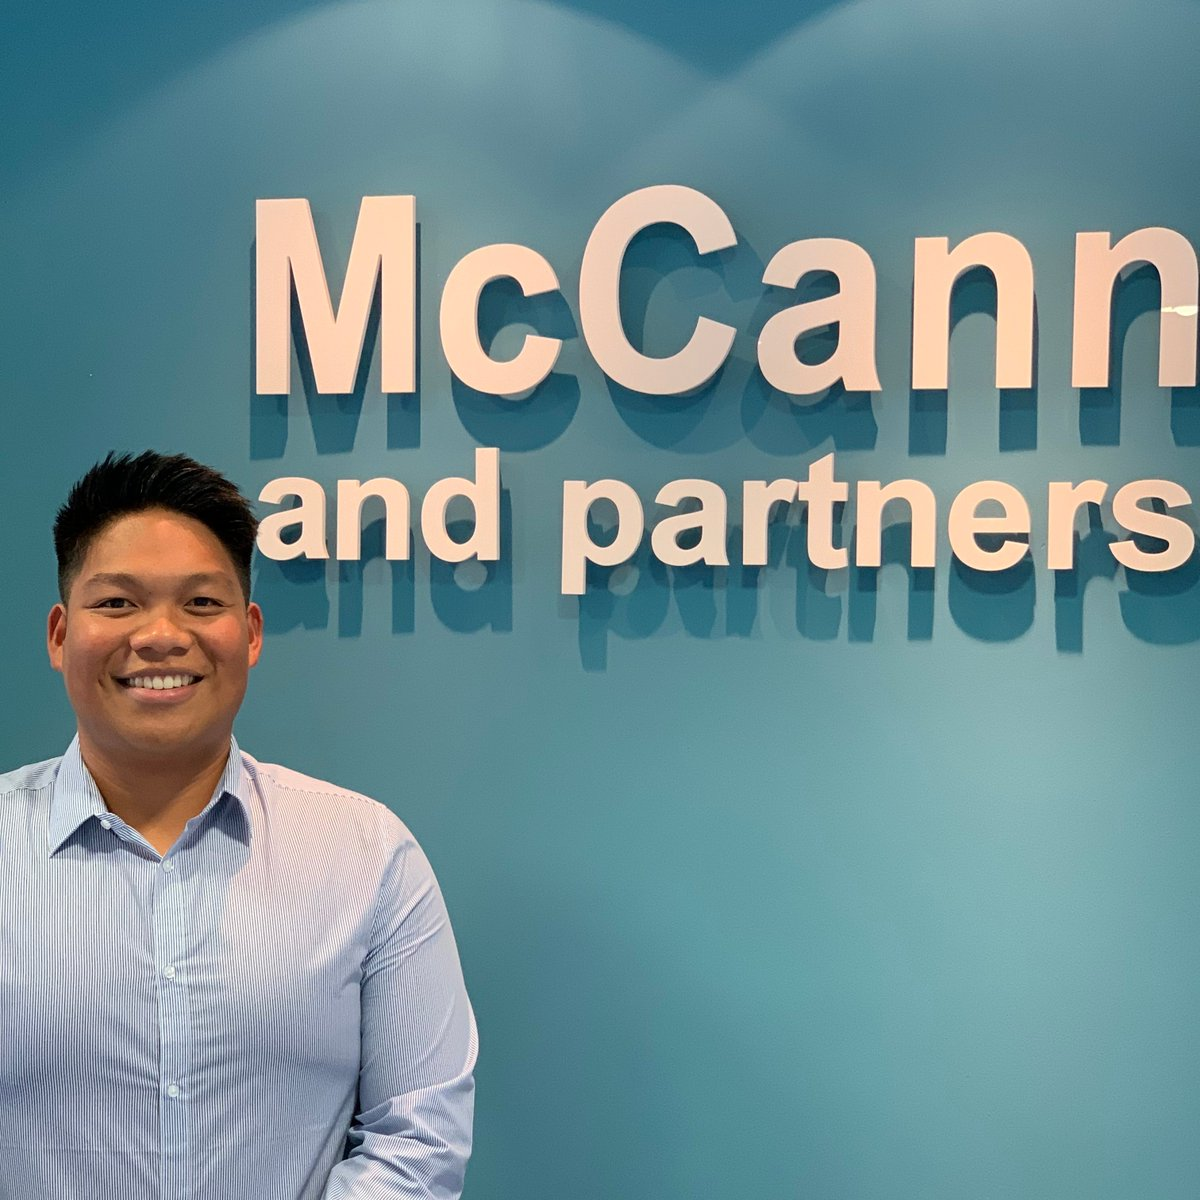 McCann and Partners on Twitter: